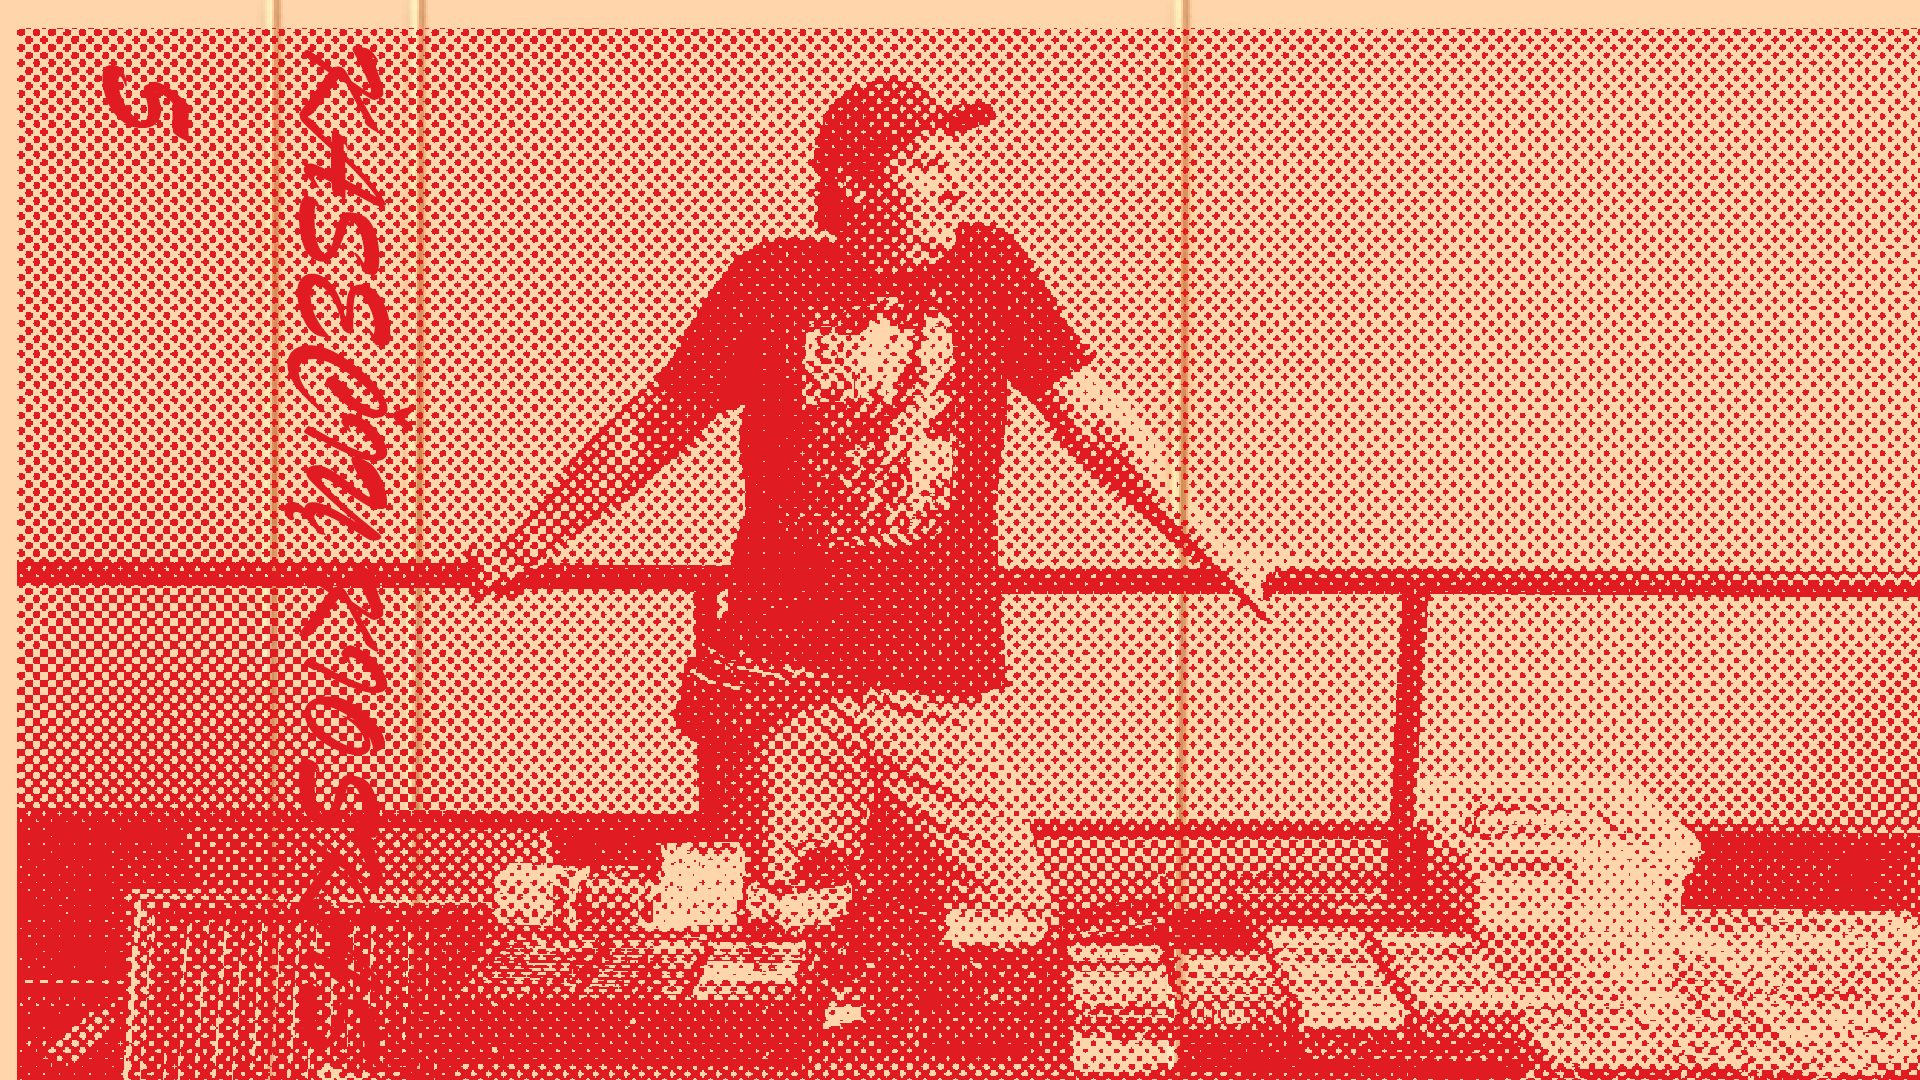 On the 5th of September, 2021, at 9 p.m. internet radio 'Rasų radijas' presents fifth show of the show series 'Kasečių Kioskas' ('Tape Kiosk'). In the 5th episode of the show, a conversation about cassettes with DJ / music journalist Paulius Ilevičius and tracks from the cassette collection of Armantas Gečiauskas – music from the USA.